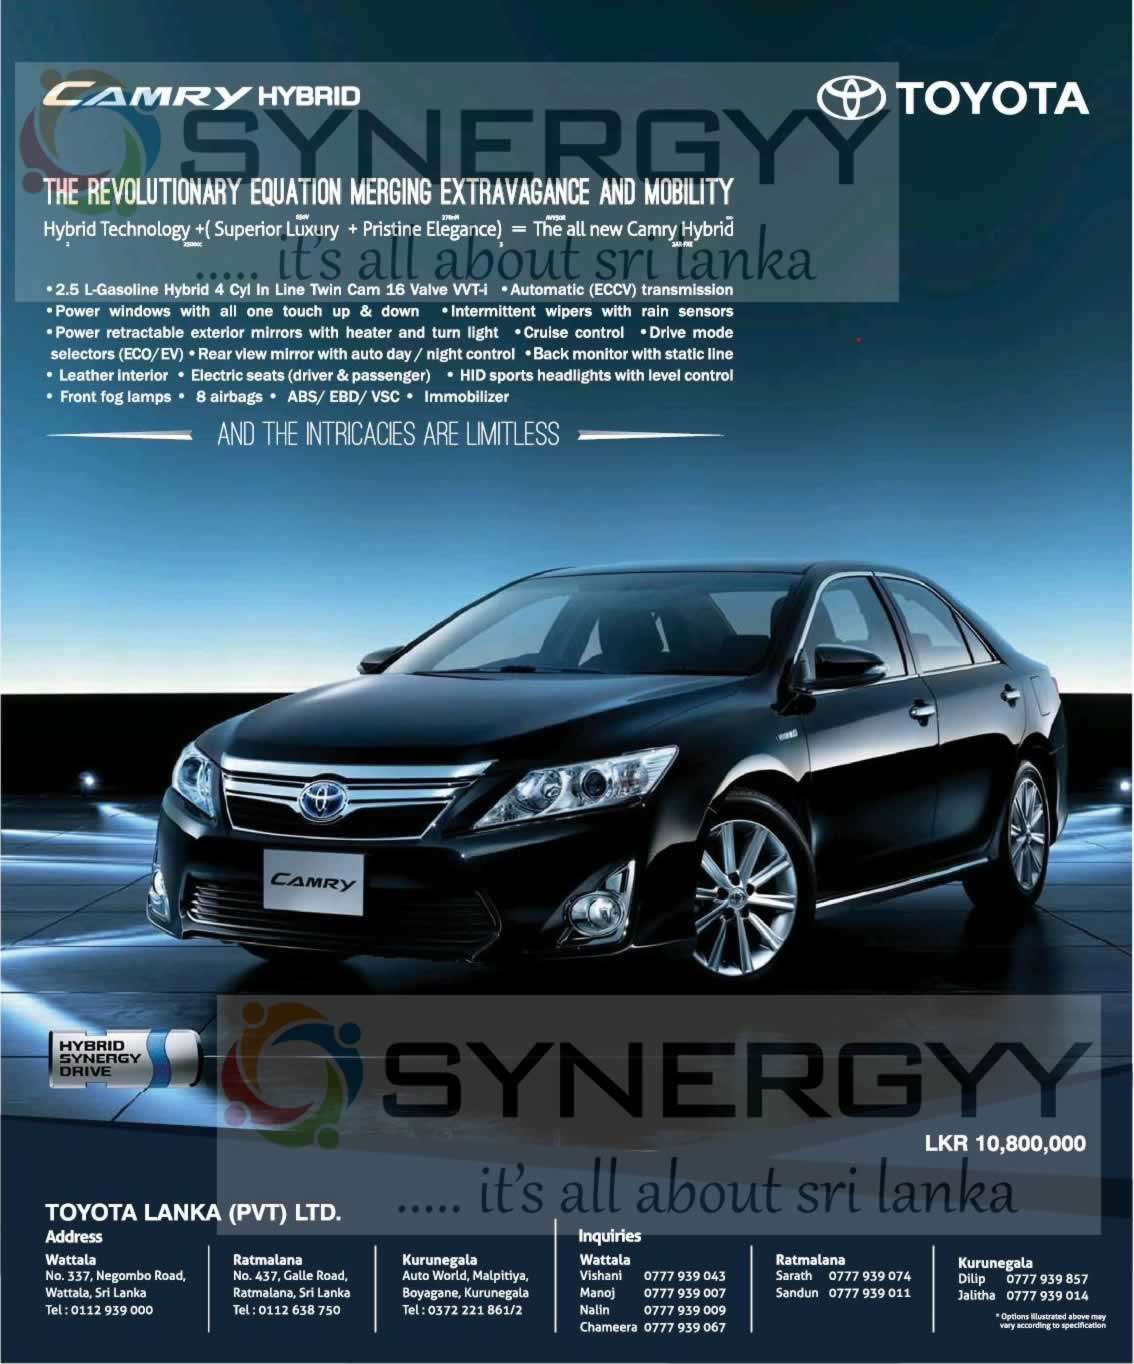 Toyota Vehicles Prices and Promotions in Sri Lanka – SynergyY